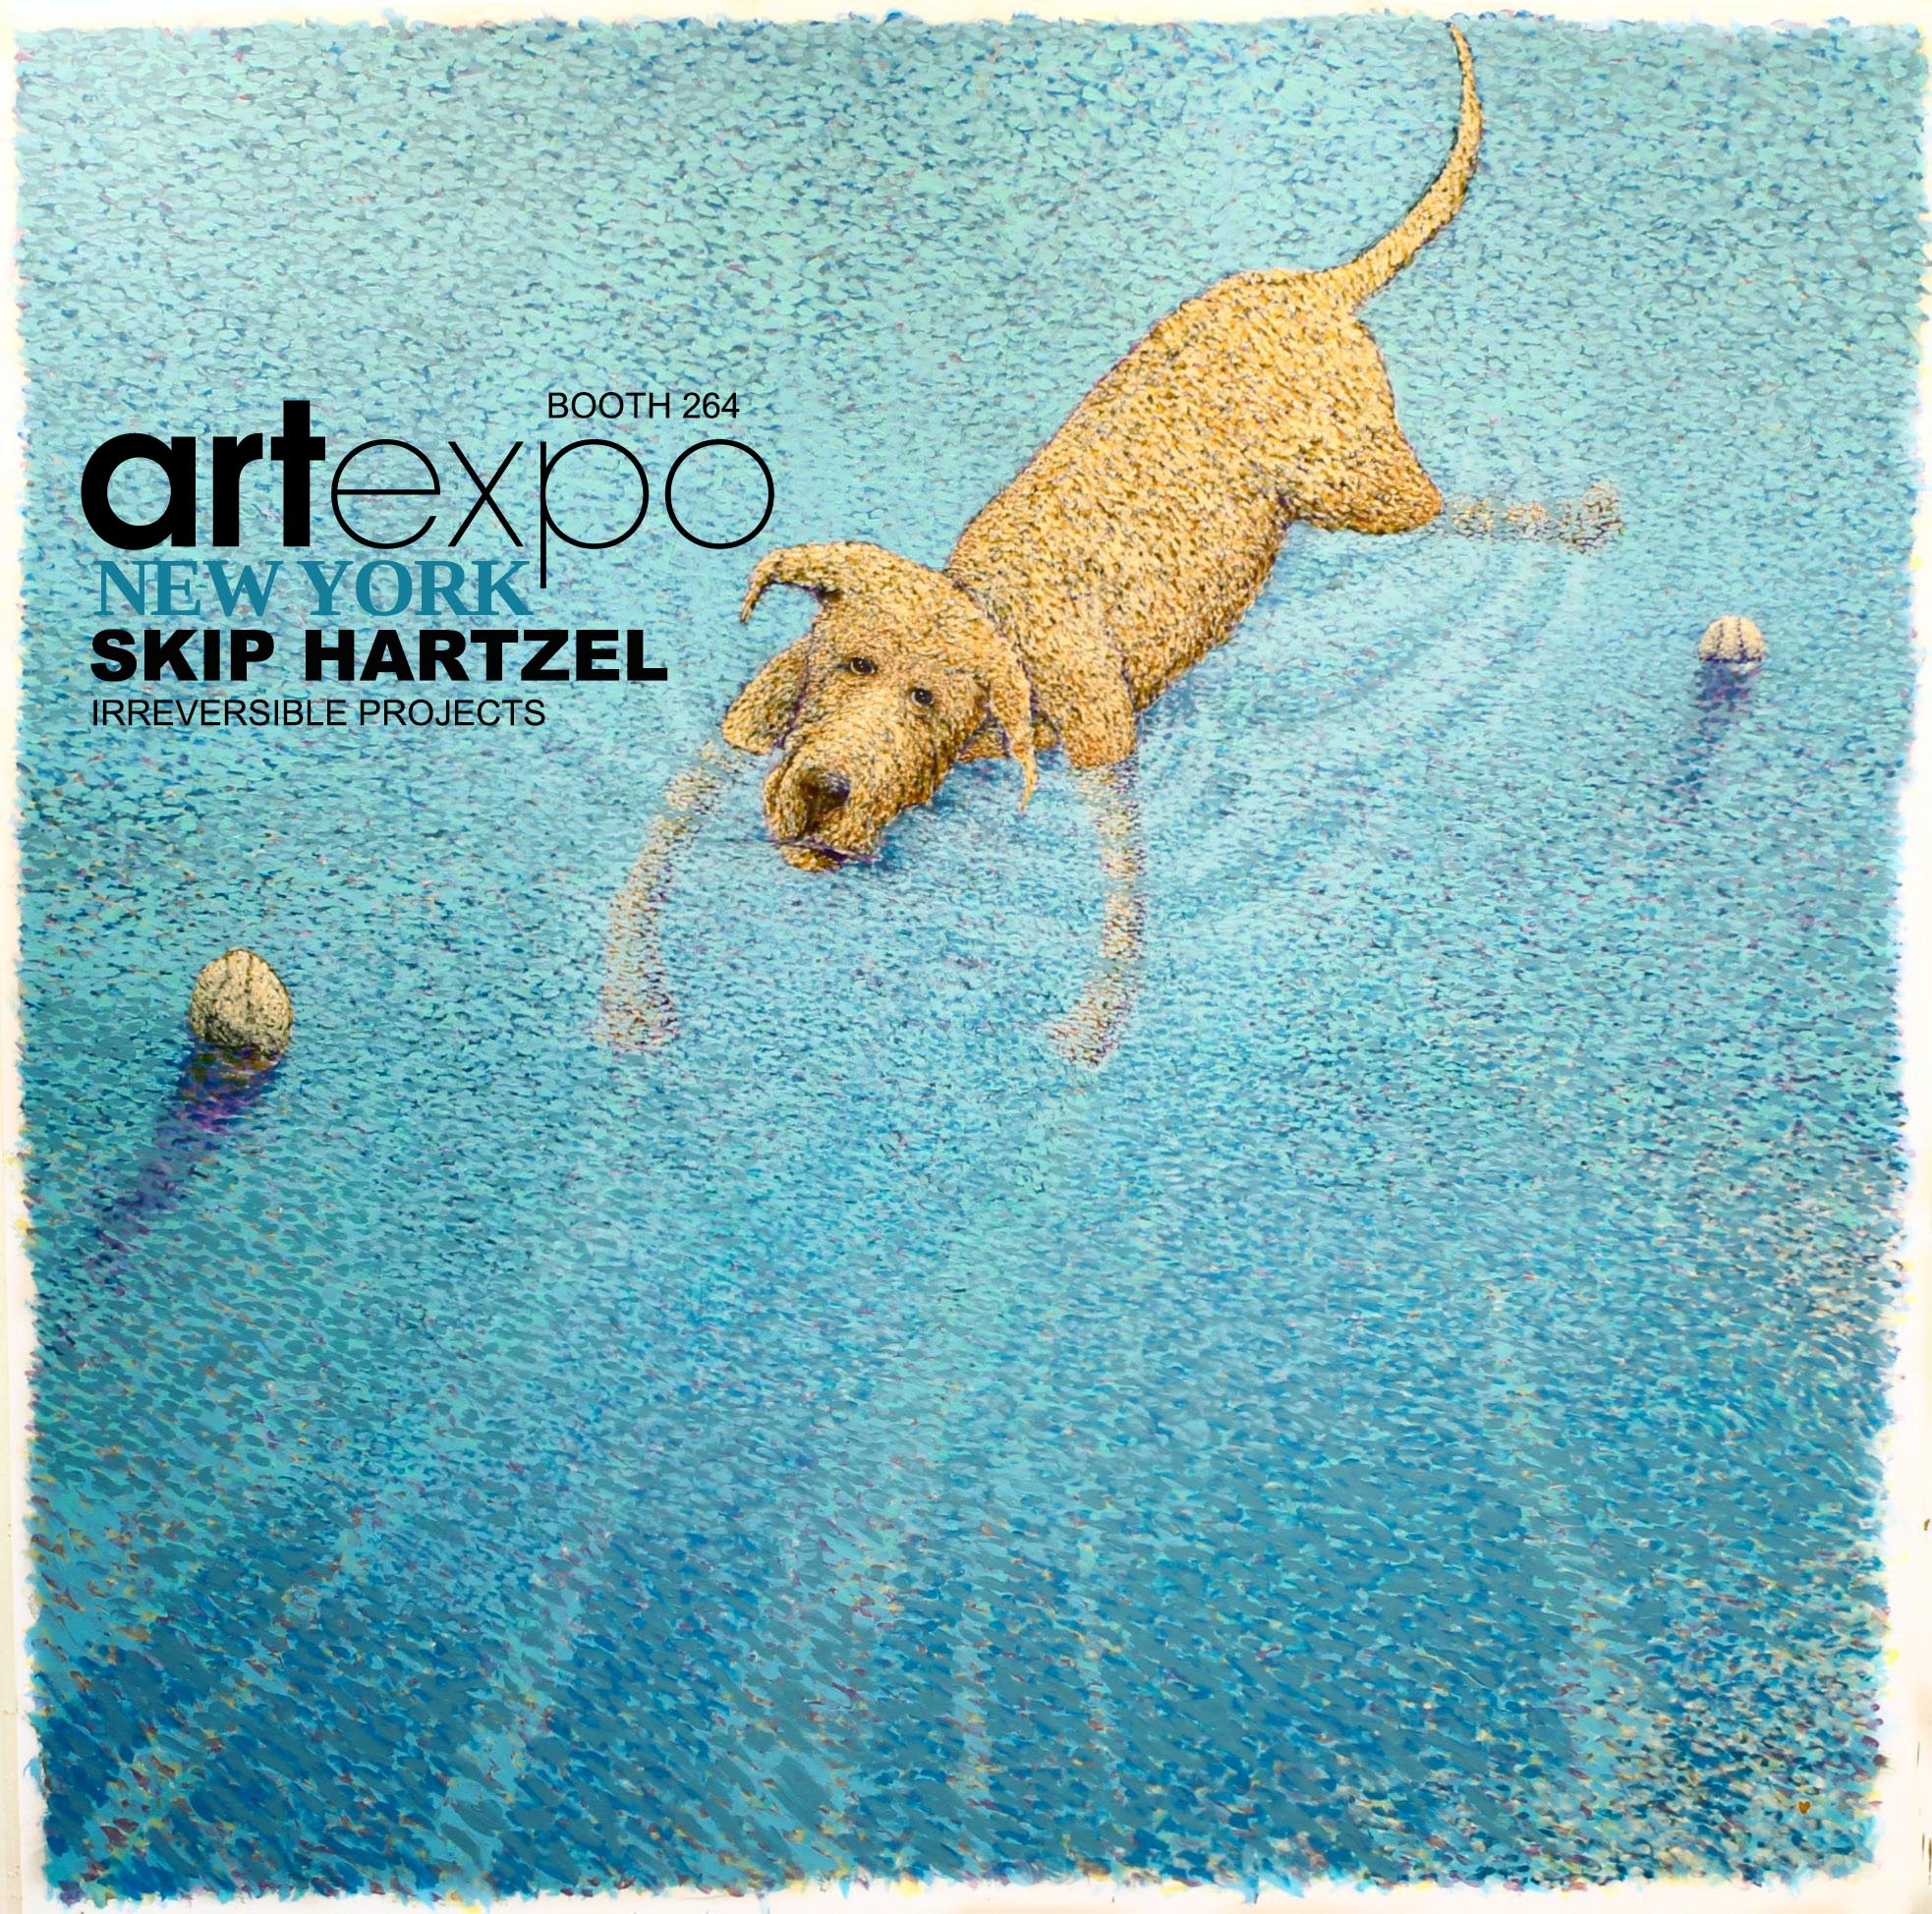 Opening new exhibition SKIP HARTZELL booth 264 ARTEXPO NEW YORK from Thursday, April 19th to Sunday, April 22nd.